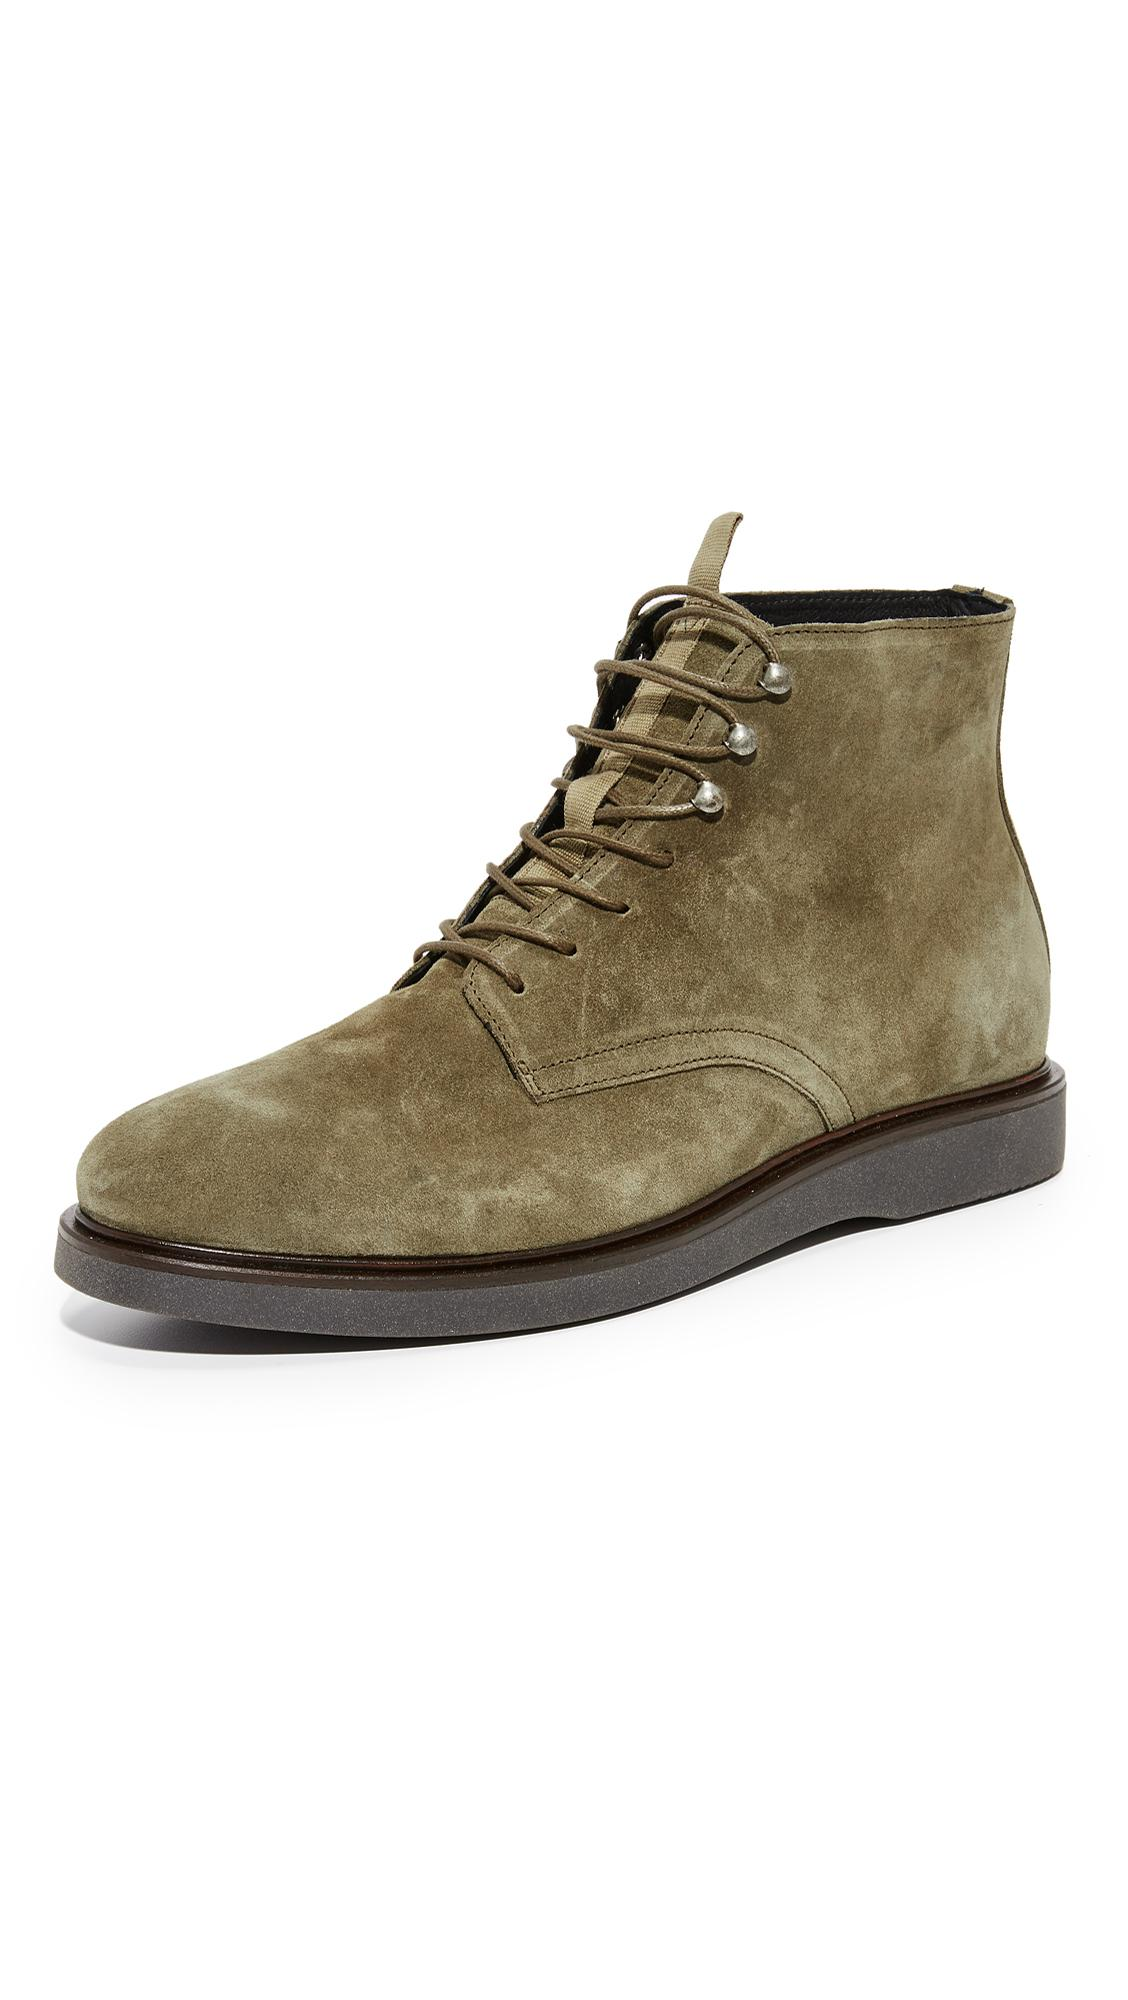 H by Hudson Aldford Suede Boots in